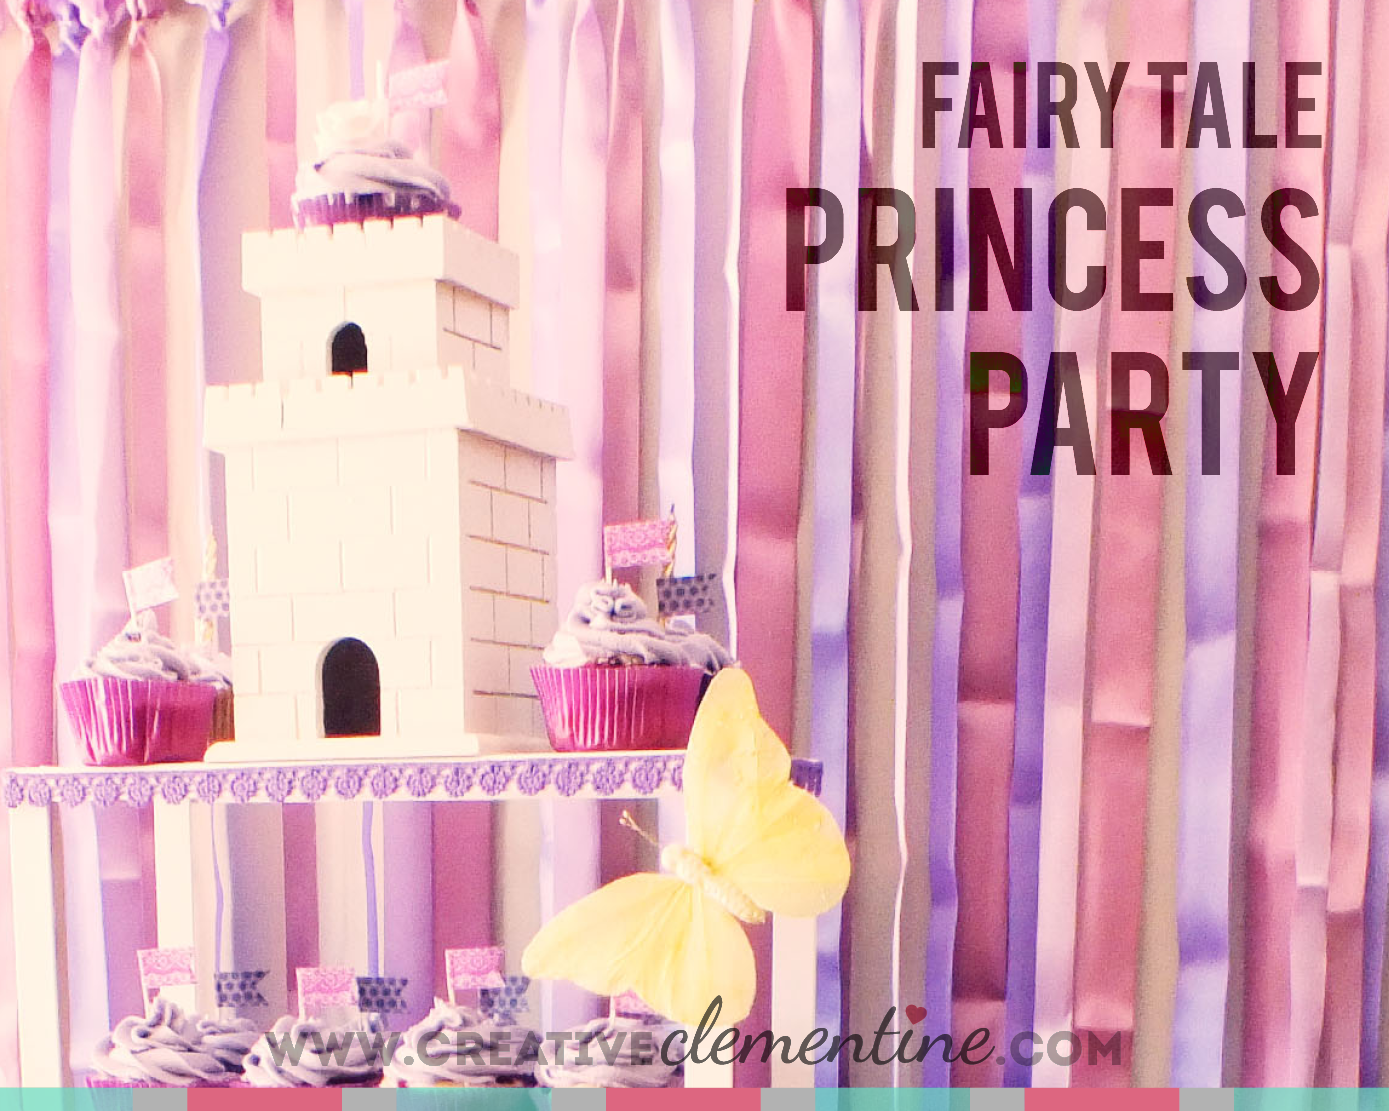 Kid-Friendly Fairy Tale Princess Party by Creative Clementine